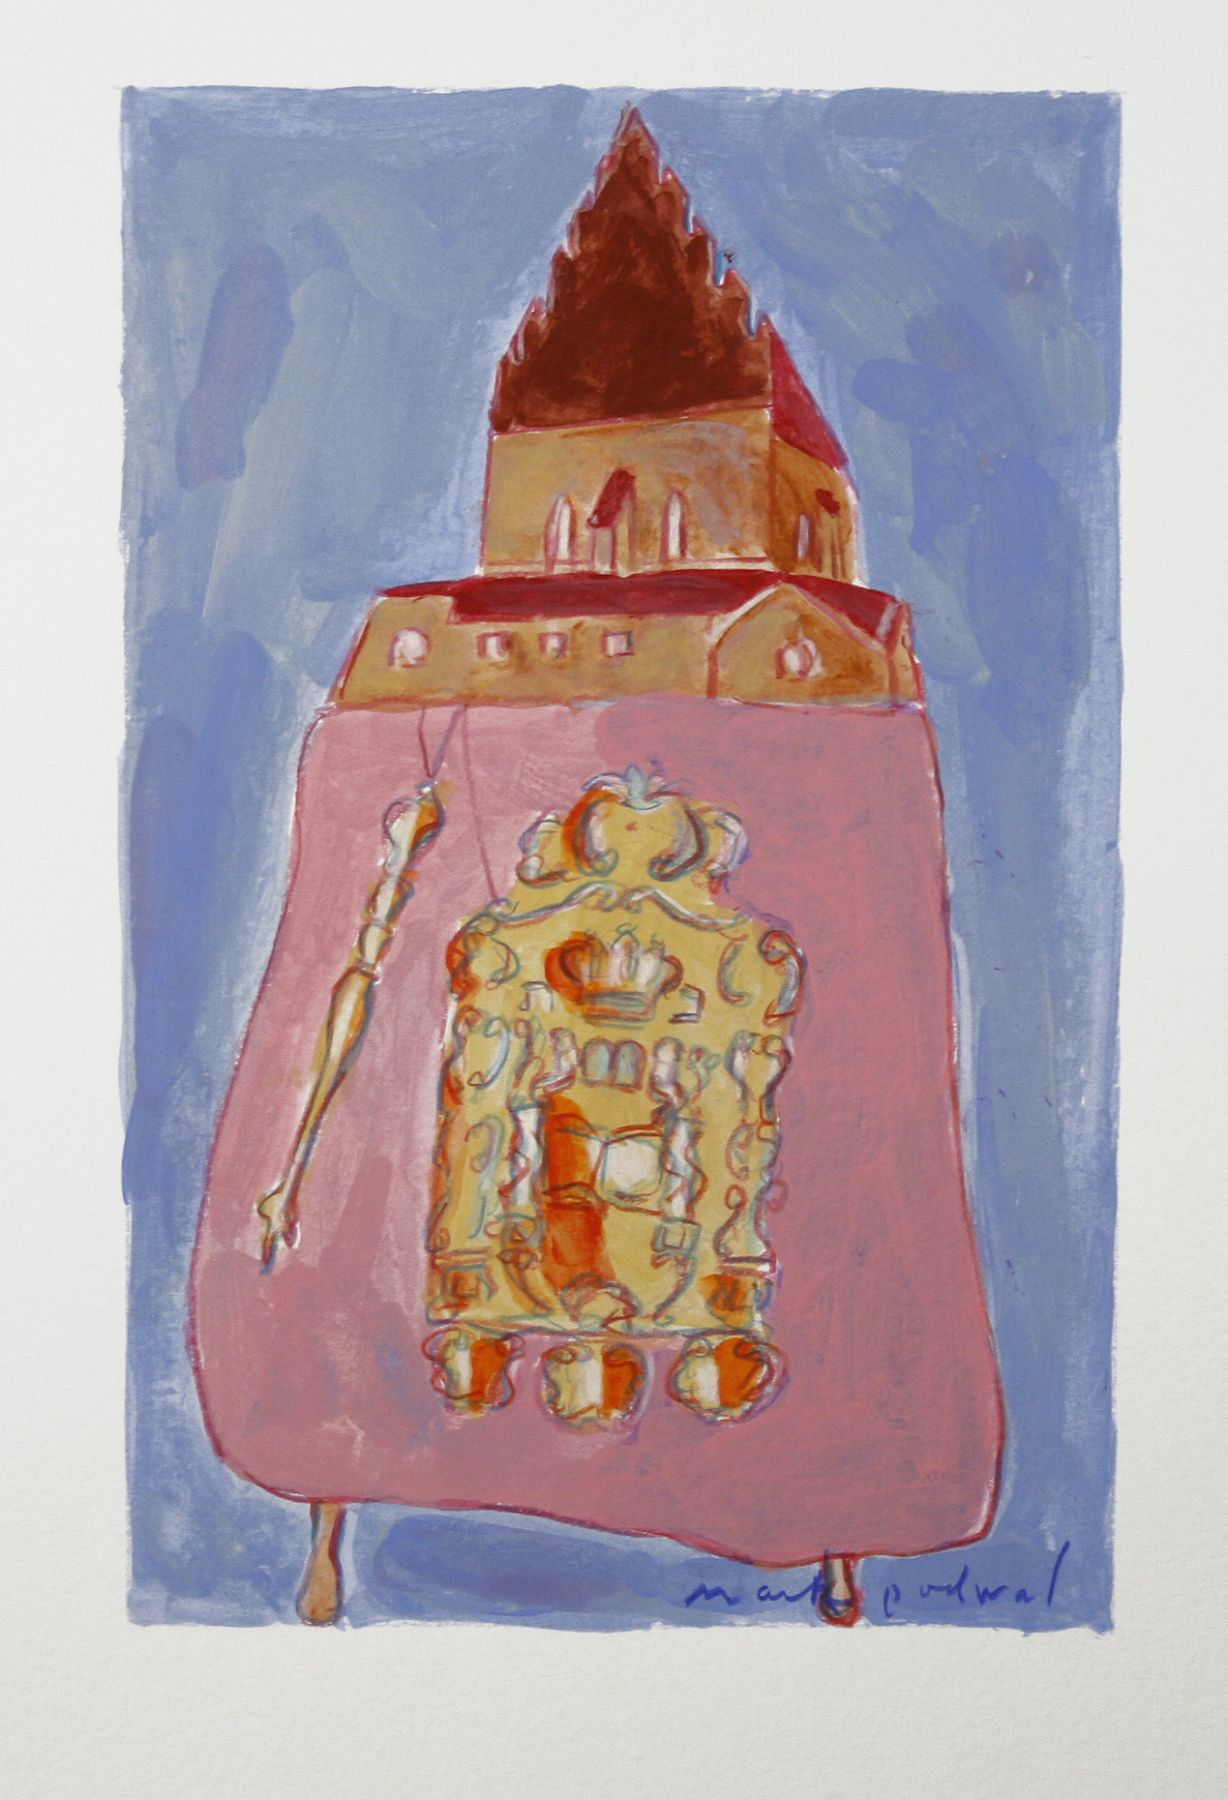 Mark Podwal, The Old-New Synagogue, 2008, acrylic, gouache and colored pencil on paper, 9 3/4 x 6 1/4